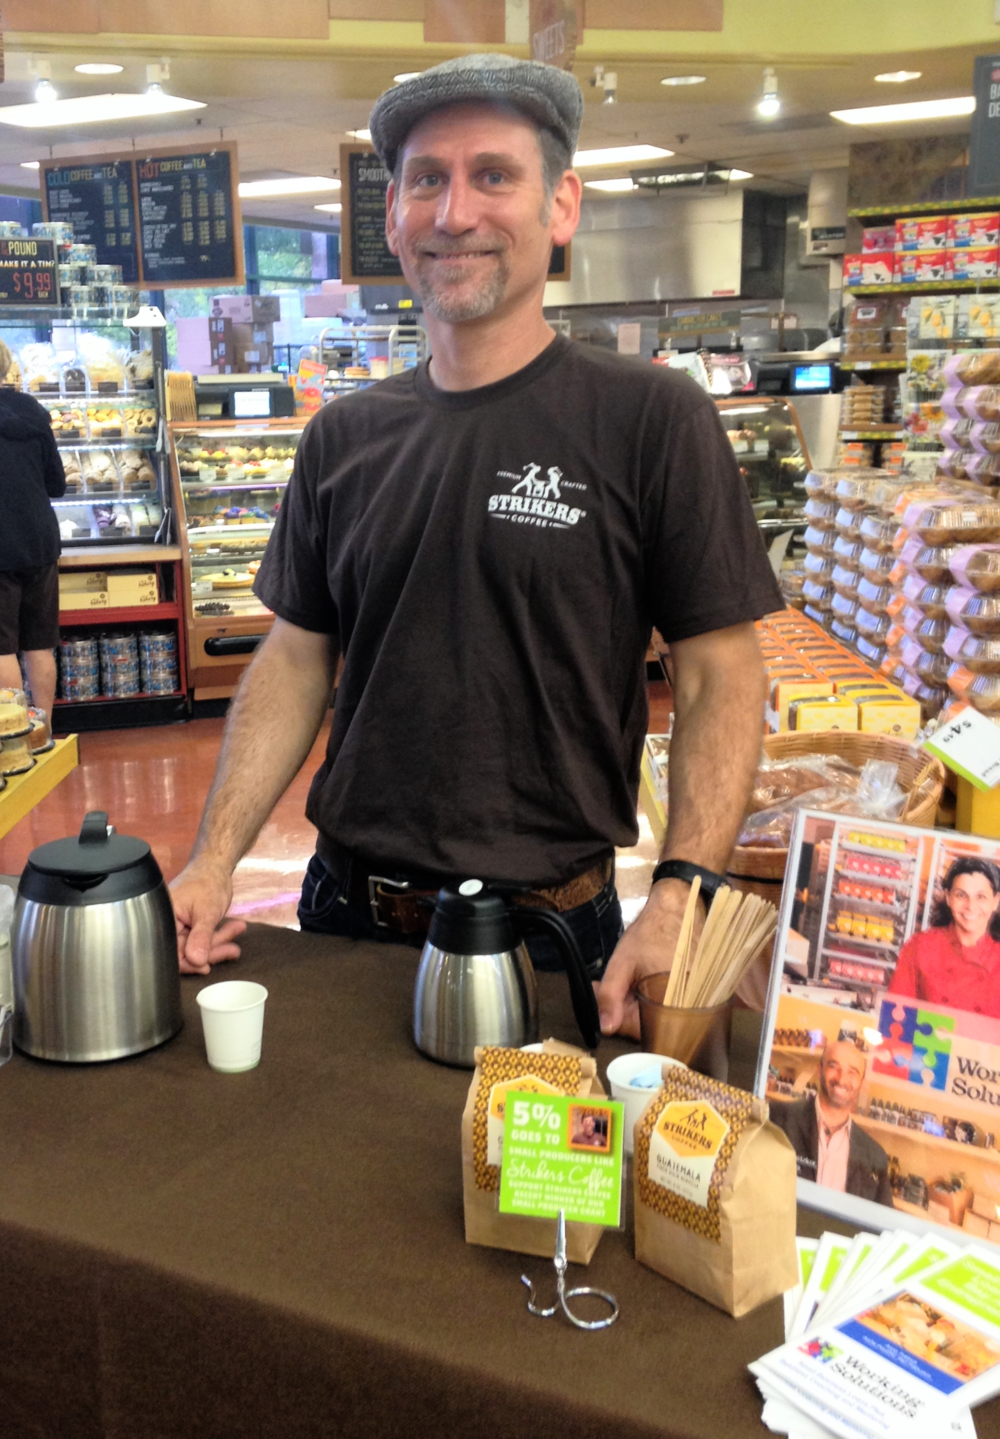 Grantwinner Jeff of Striker's Coffee at Whole Foods in San Ramon